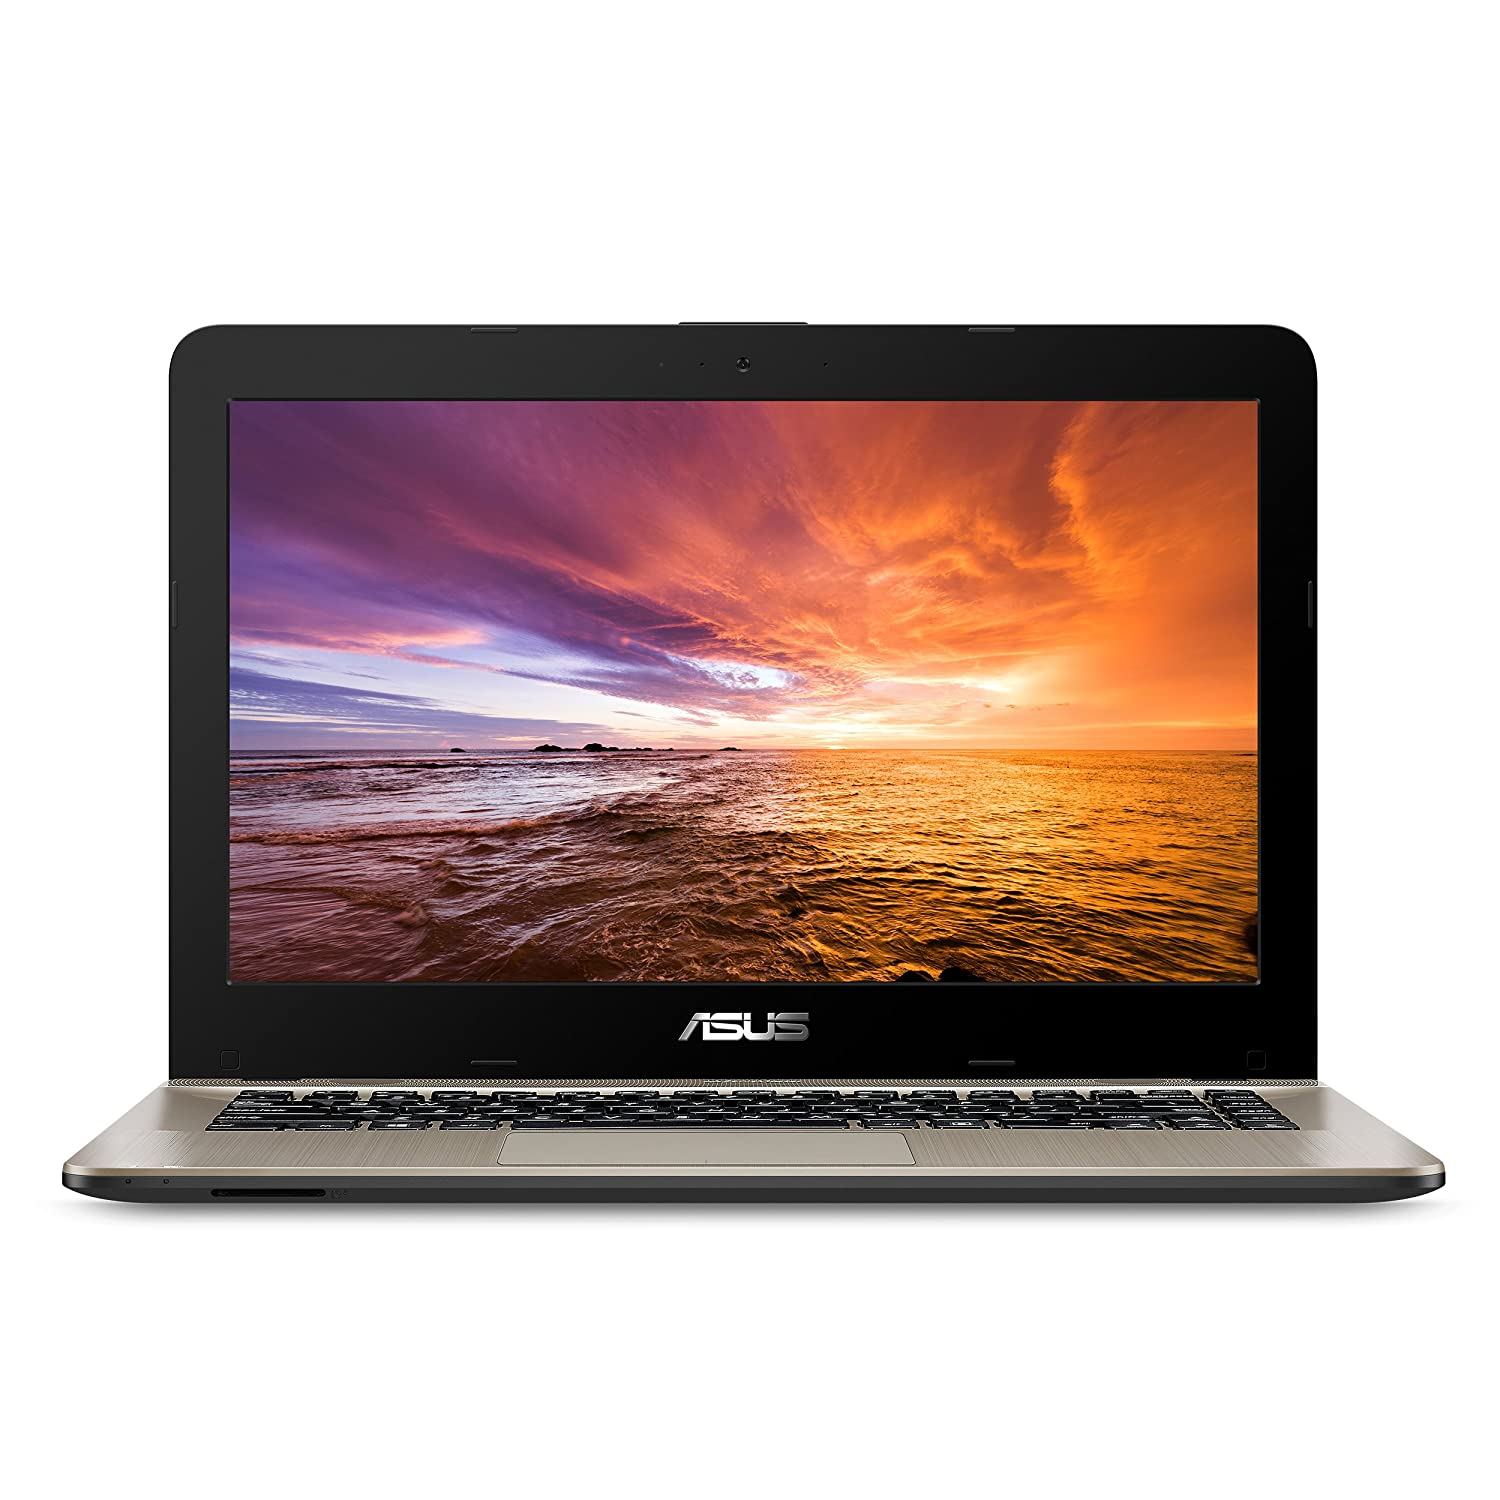 "Asus Vivo Book F441 Light And Powerful Laptop, Amd A9 Dual Core Processor (Boost Up To 3.6 Ghz), Radeon R5 Graphics, 8 Gb Ddr4 Ram, 256 Gb Ssd, 14"" Fhd Display, Windows 10,F441 Ba Ds94 by Asus"